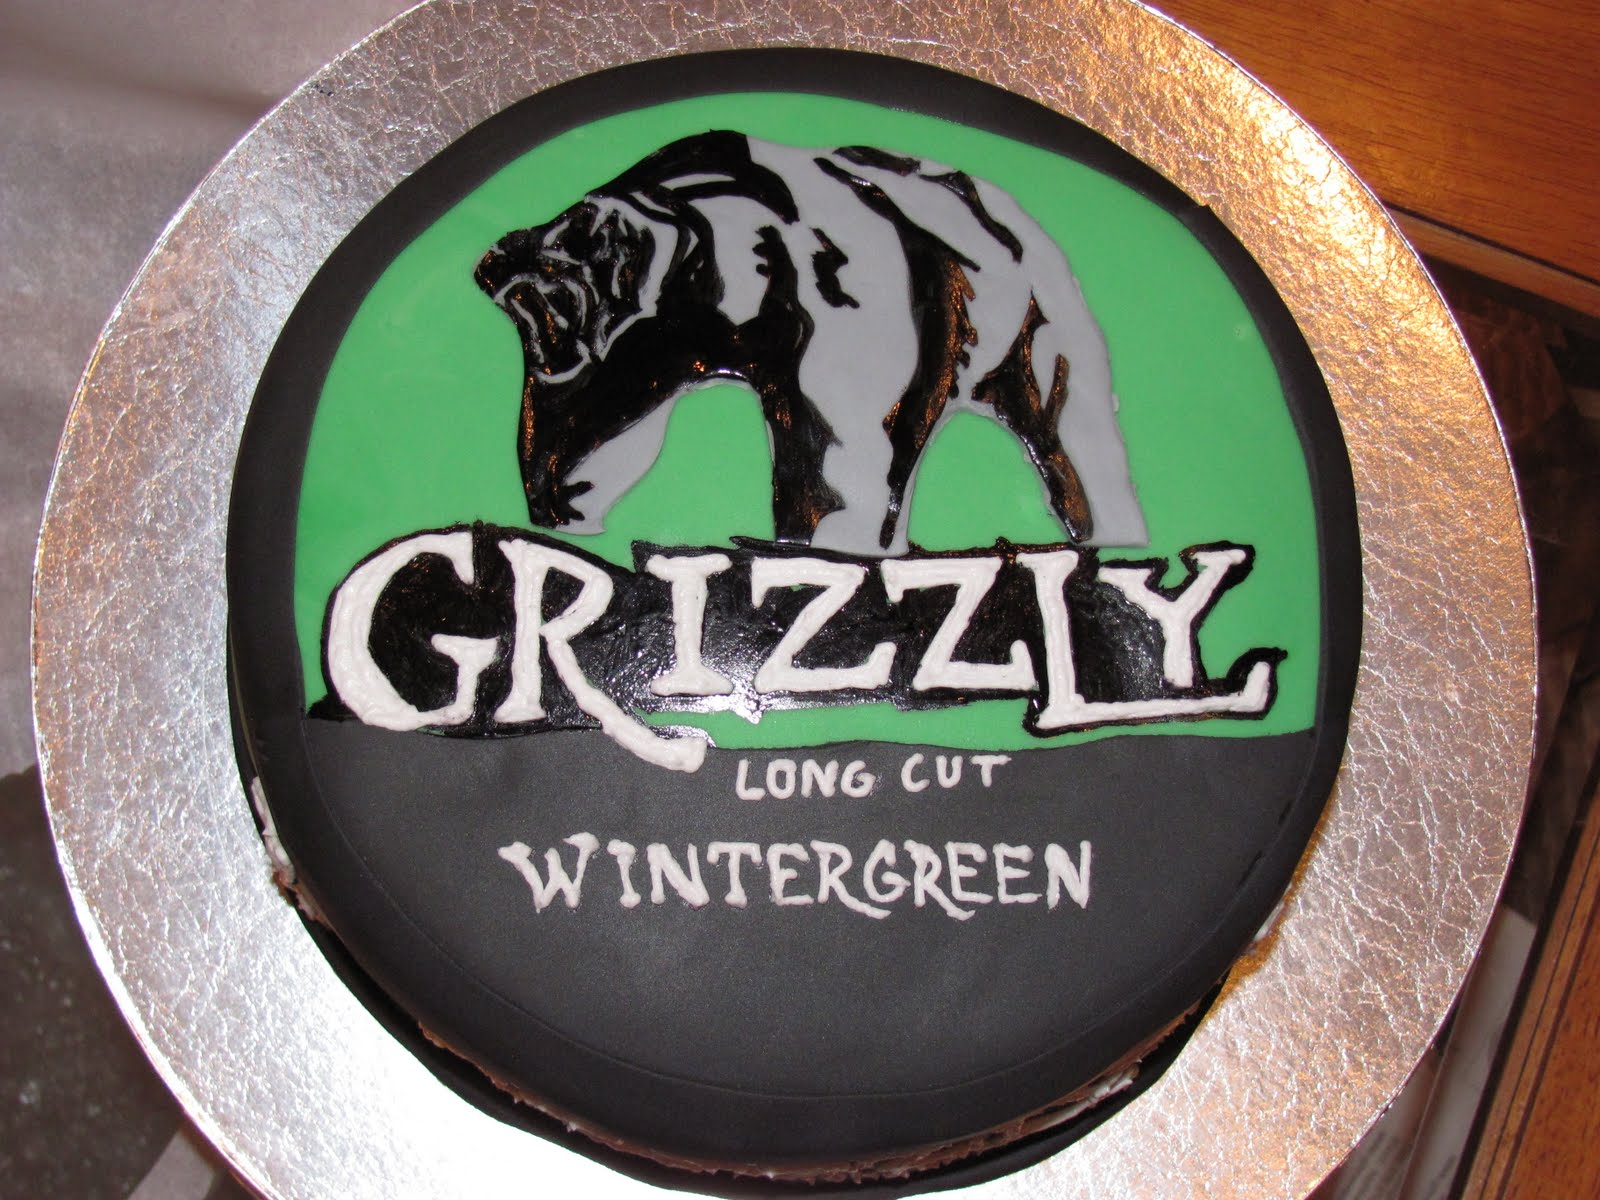 Grizzly Wintergreen Wallpaper Tobacco Flavors Pictures 1600x1200